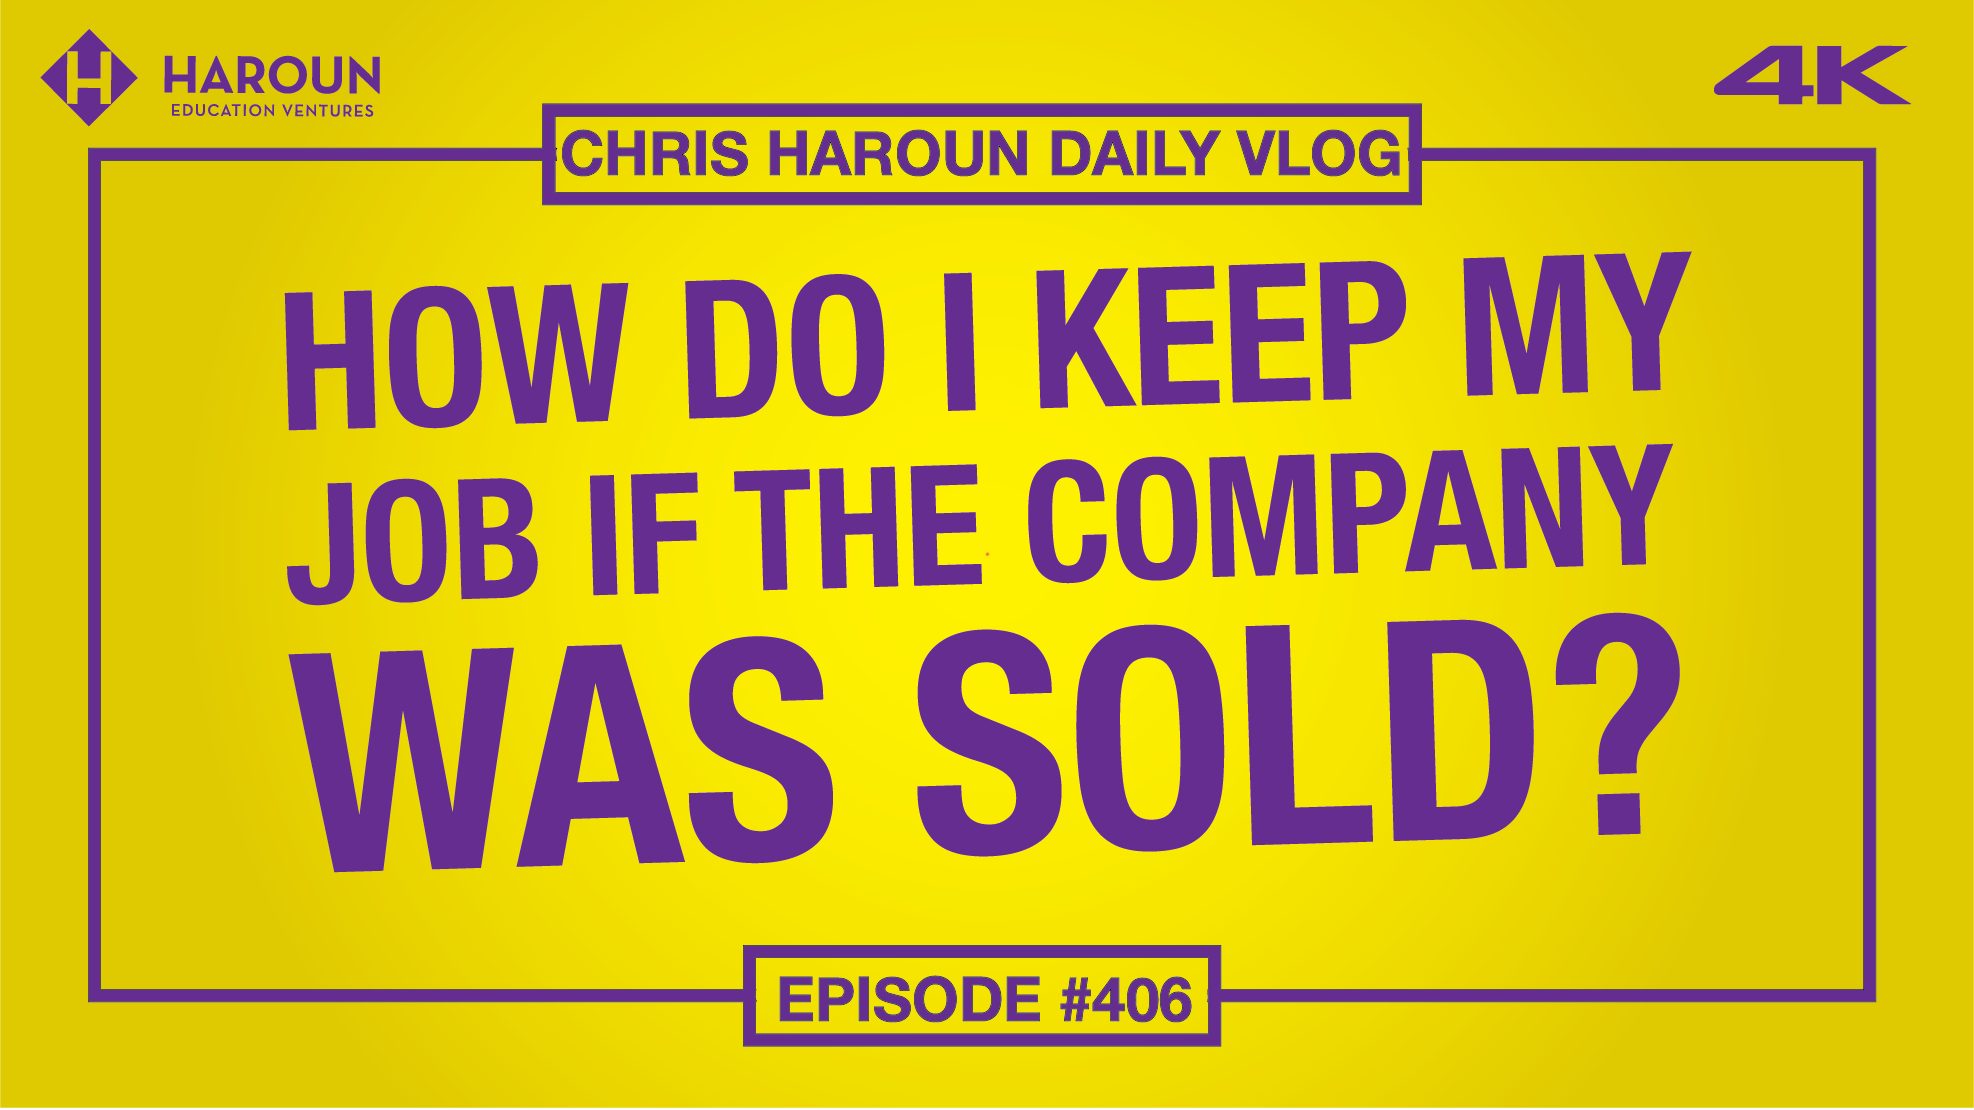 VLOG_406_9_10_2019_How do I Keep My Job if the Company Was Sold? .png